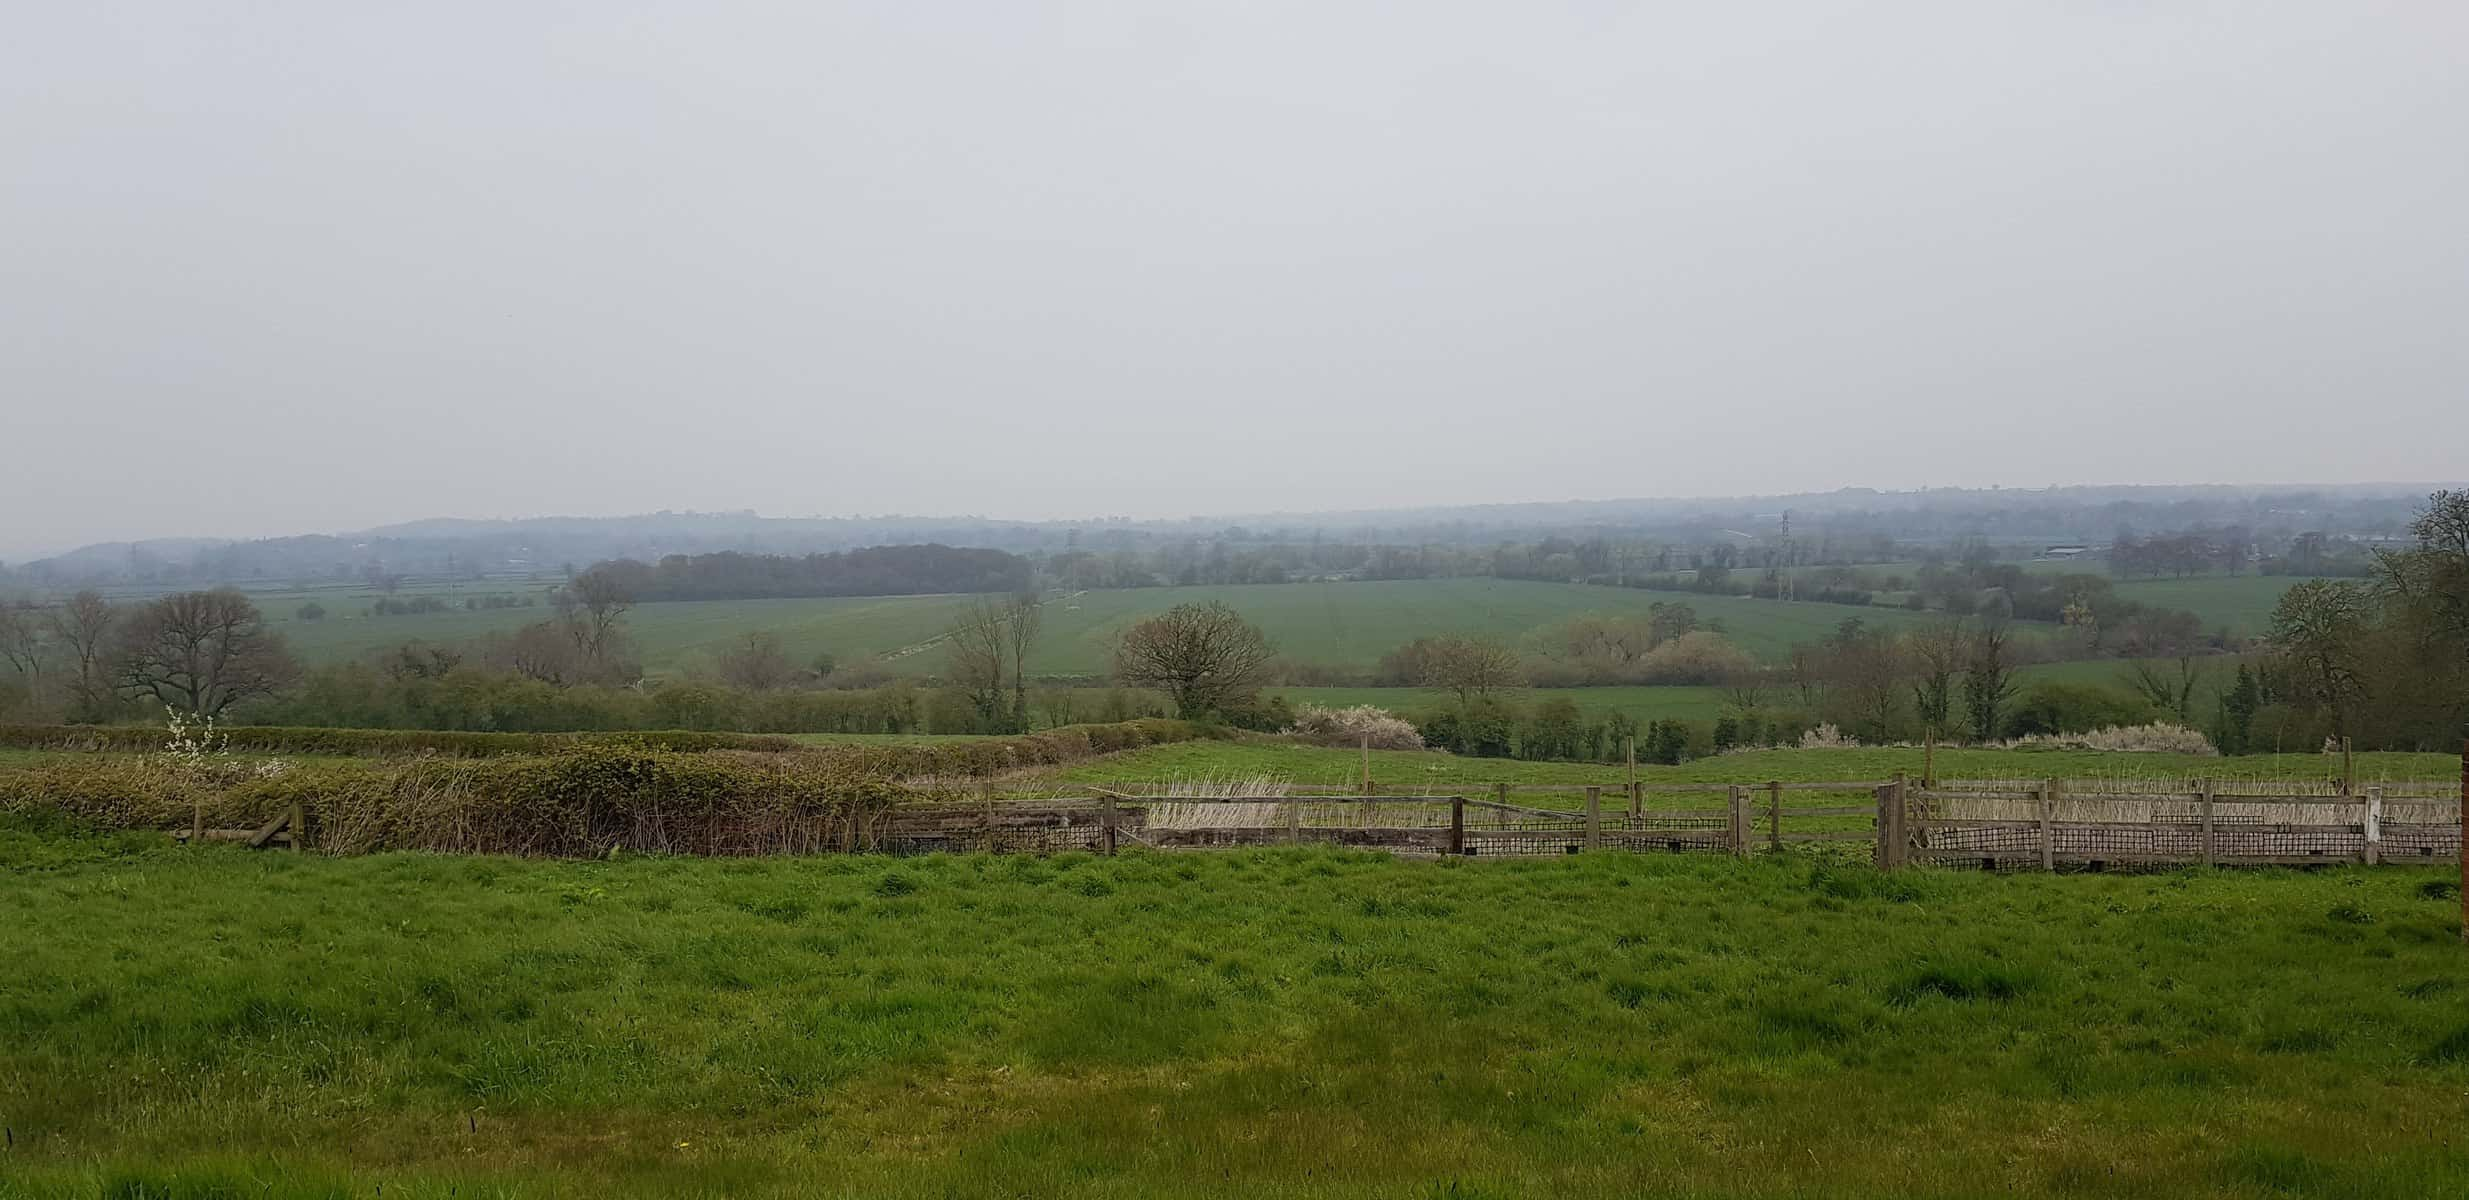 Bat Survey Marchington, Uttoxeter Staffordshire - View from rear of property